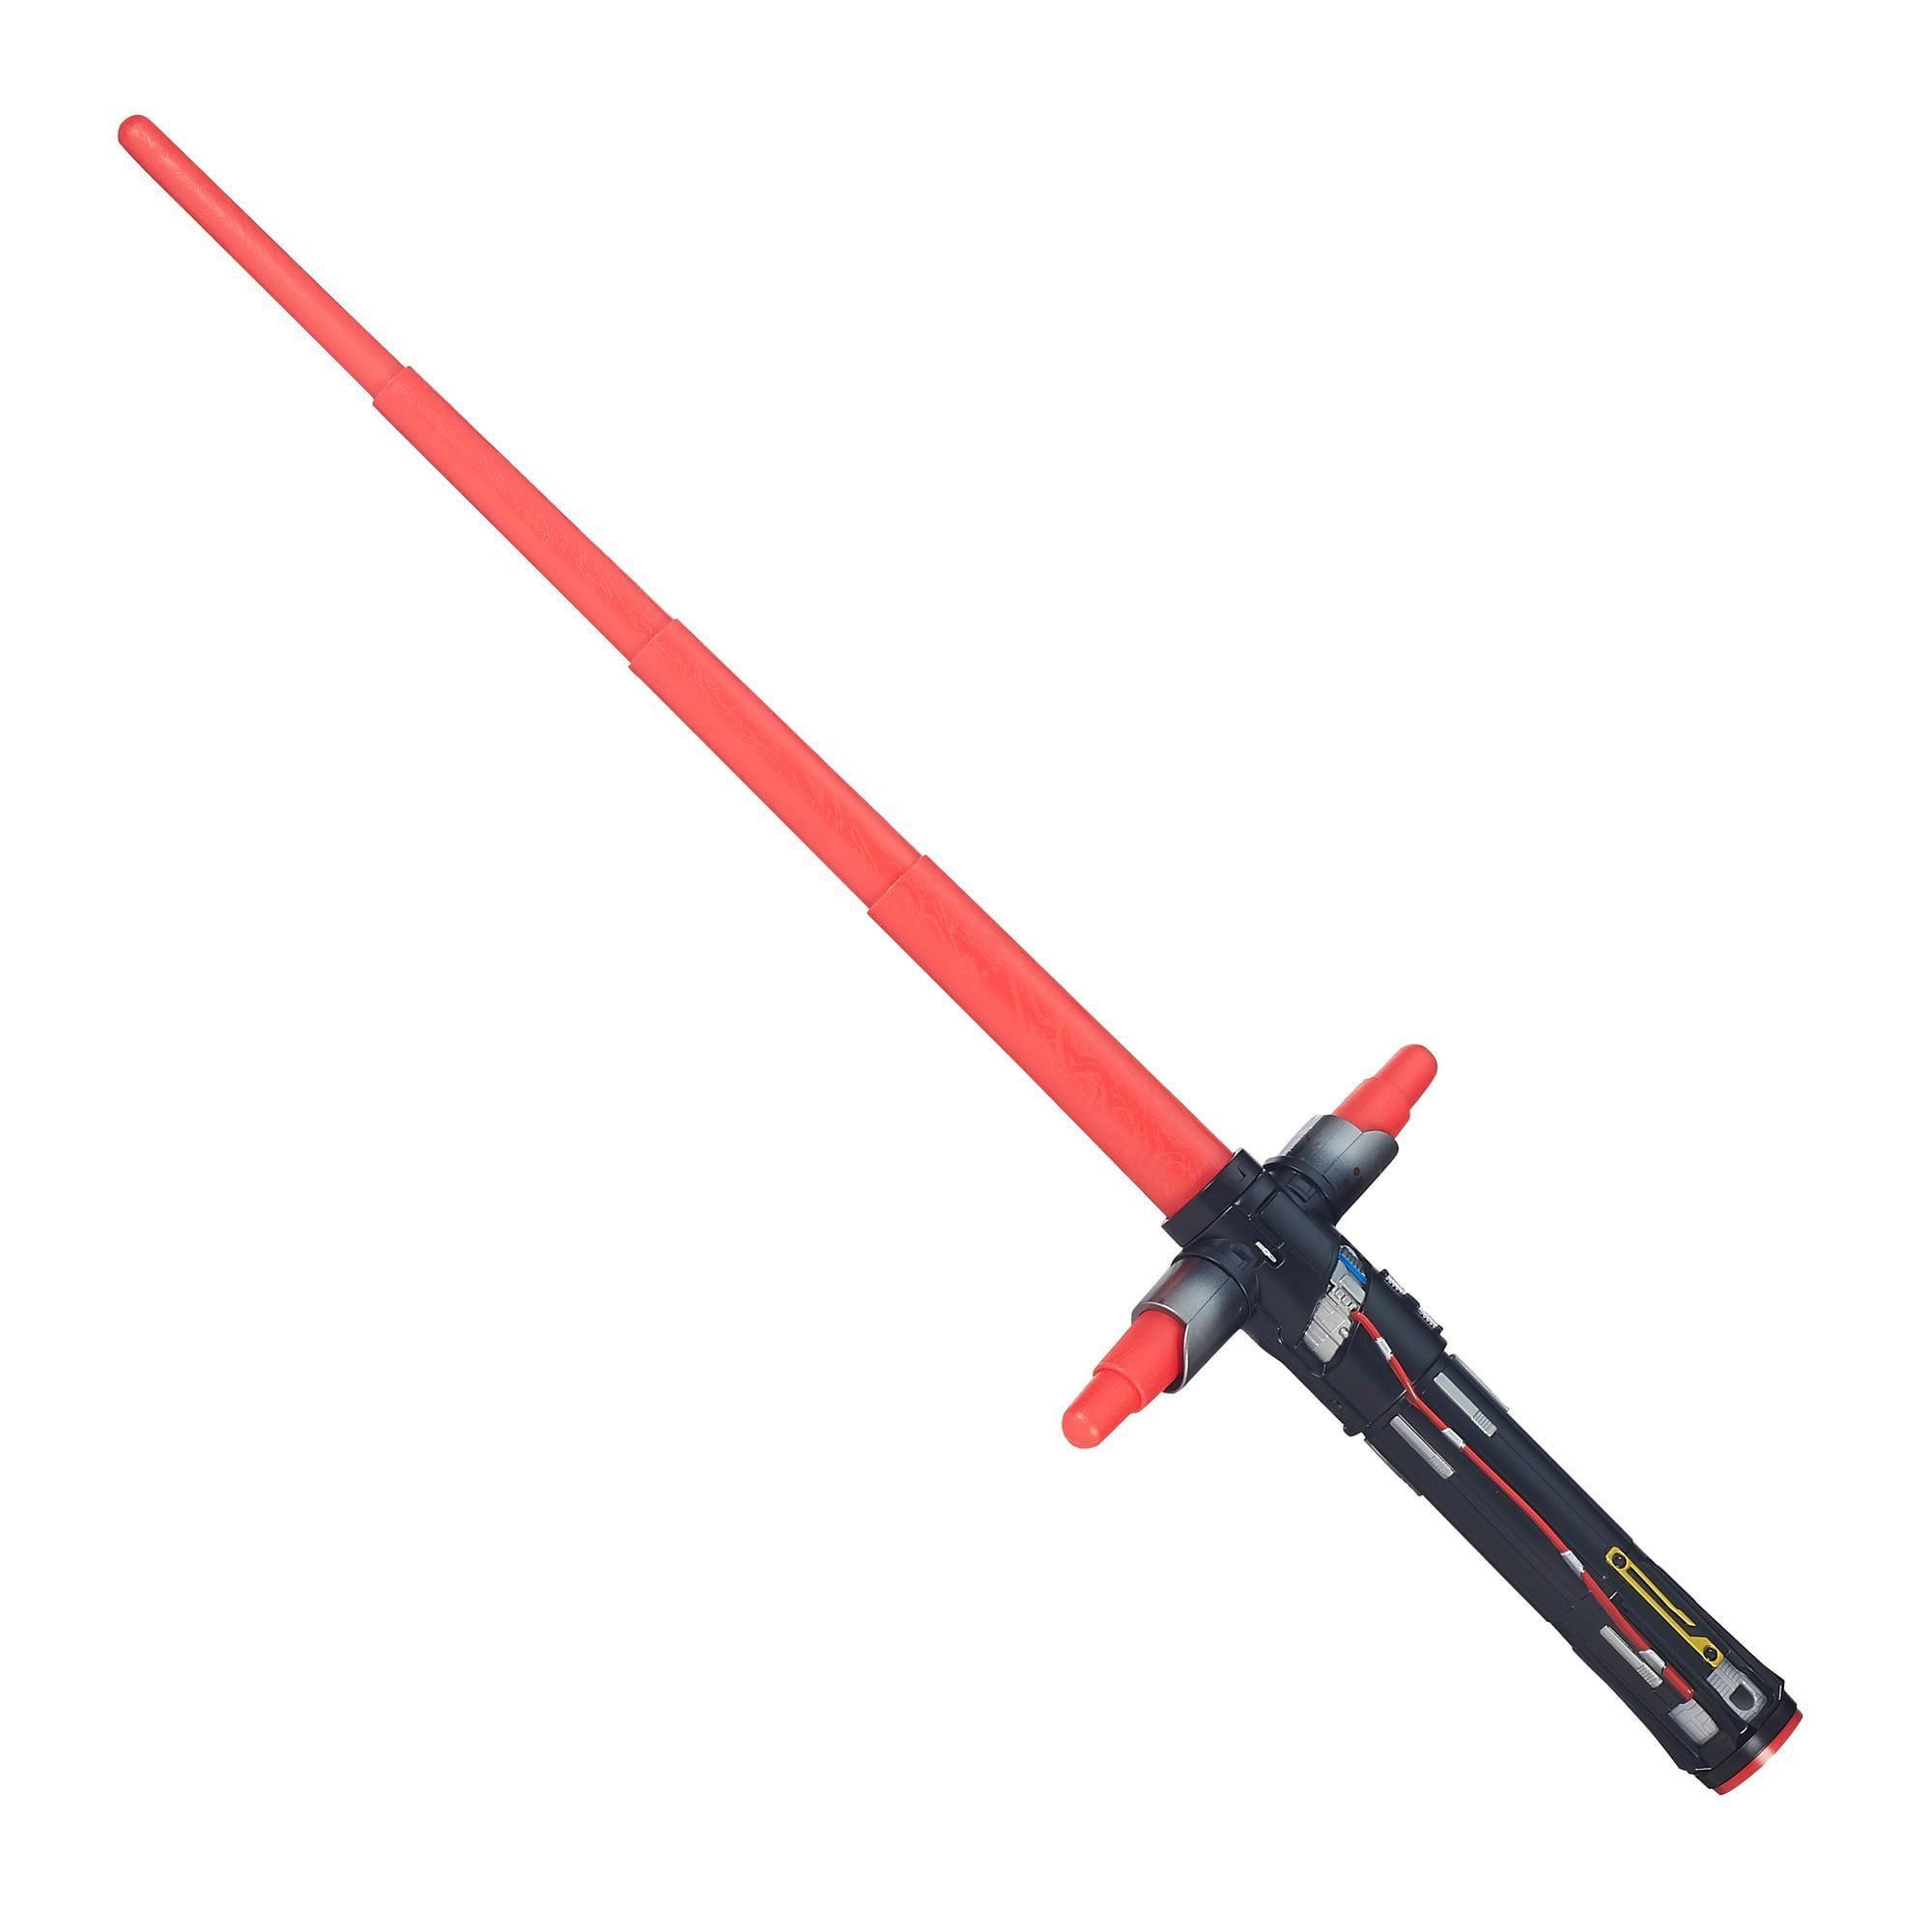 Star Wars The Force Awakens Kylo Ren Extendable Lightsaber.